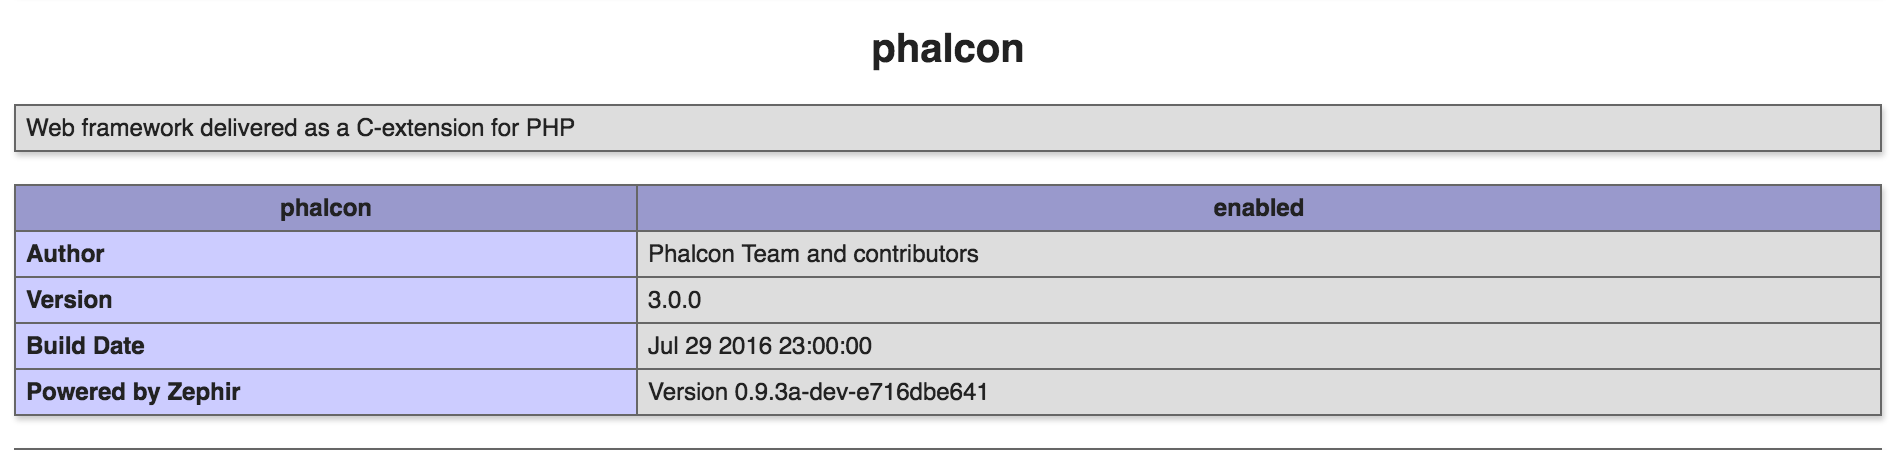 Phalcon is active in phpinfo